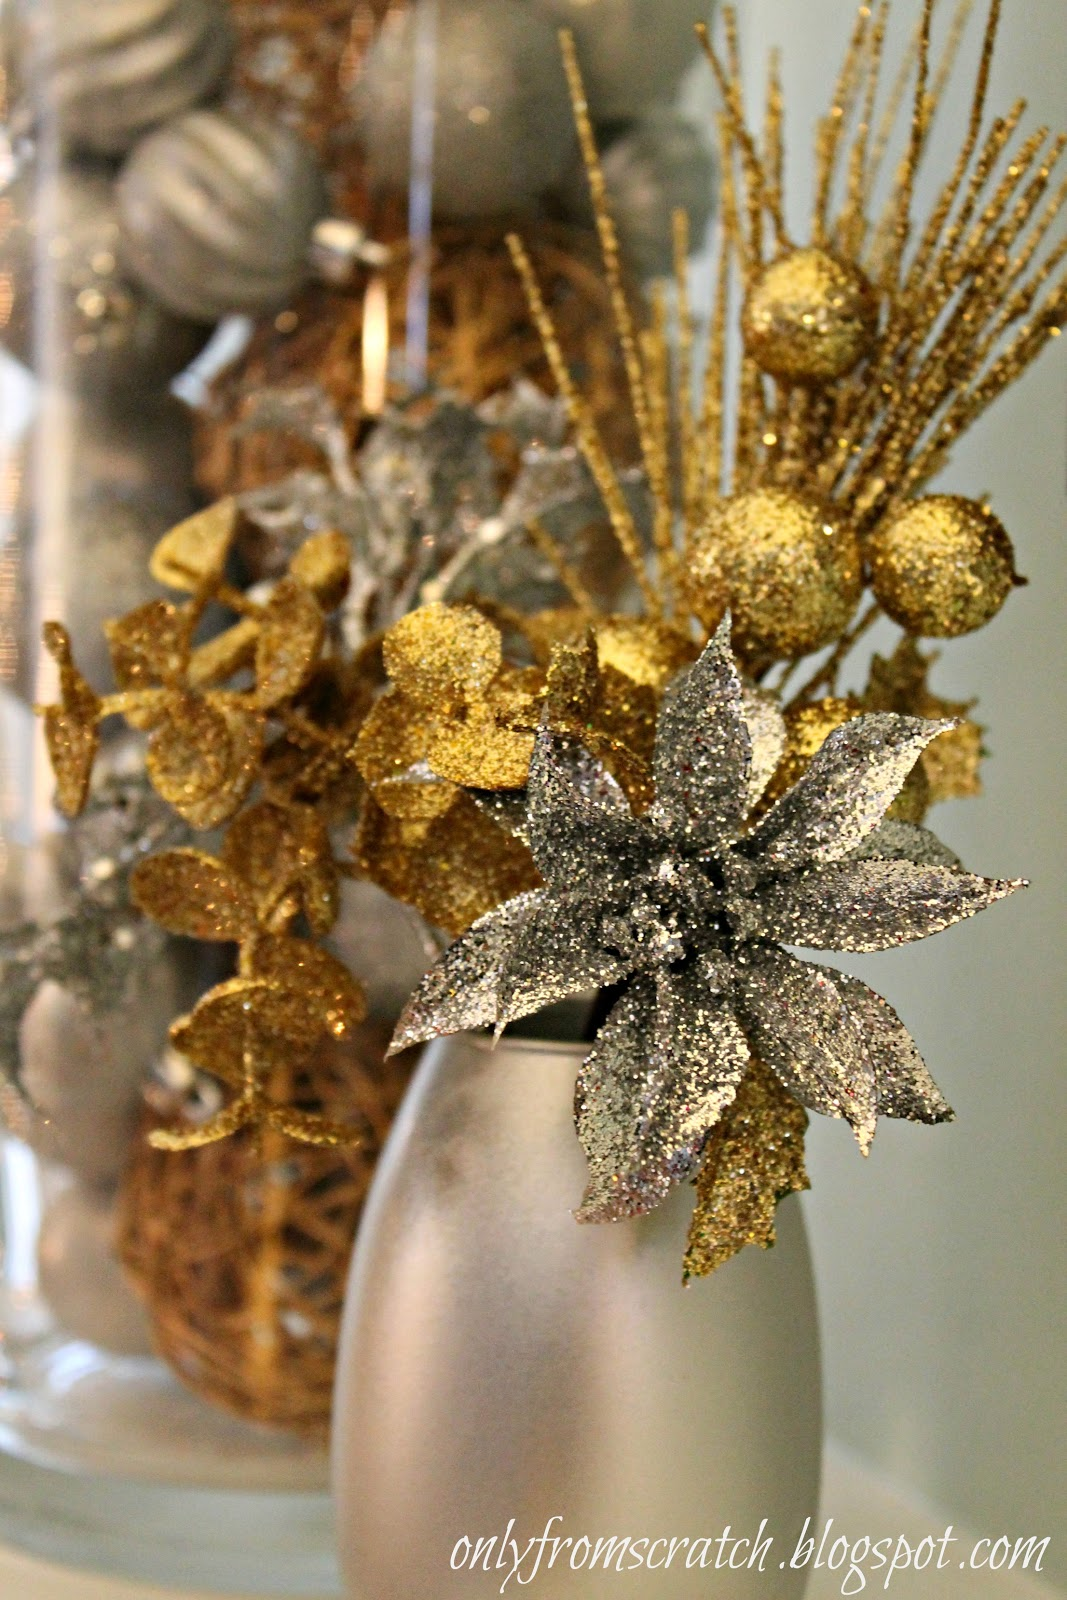 Only From Scratch: Gold & Silver Christmas Mantel